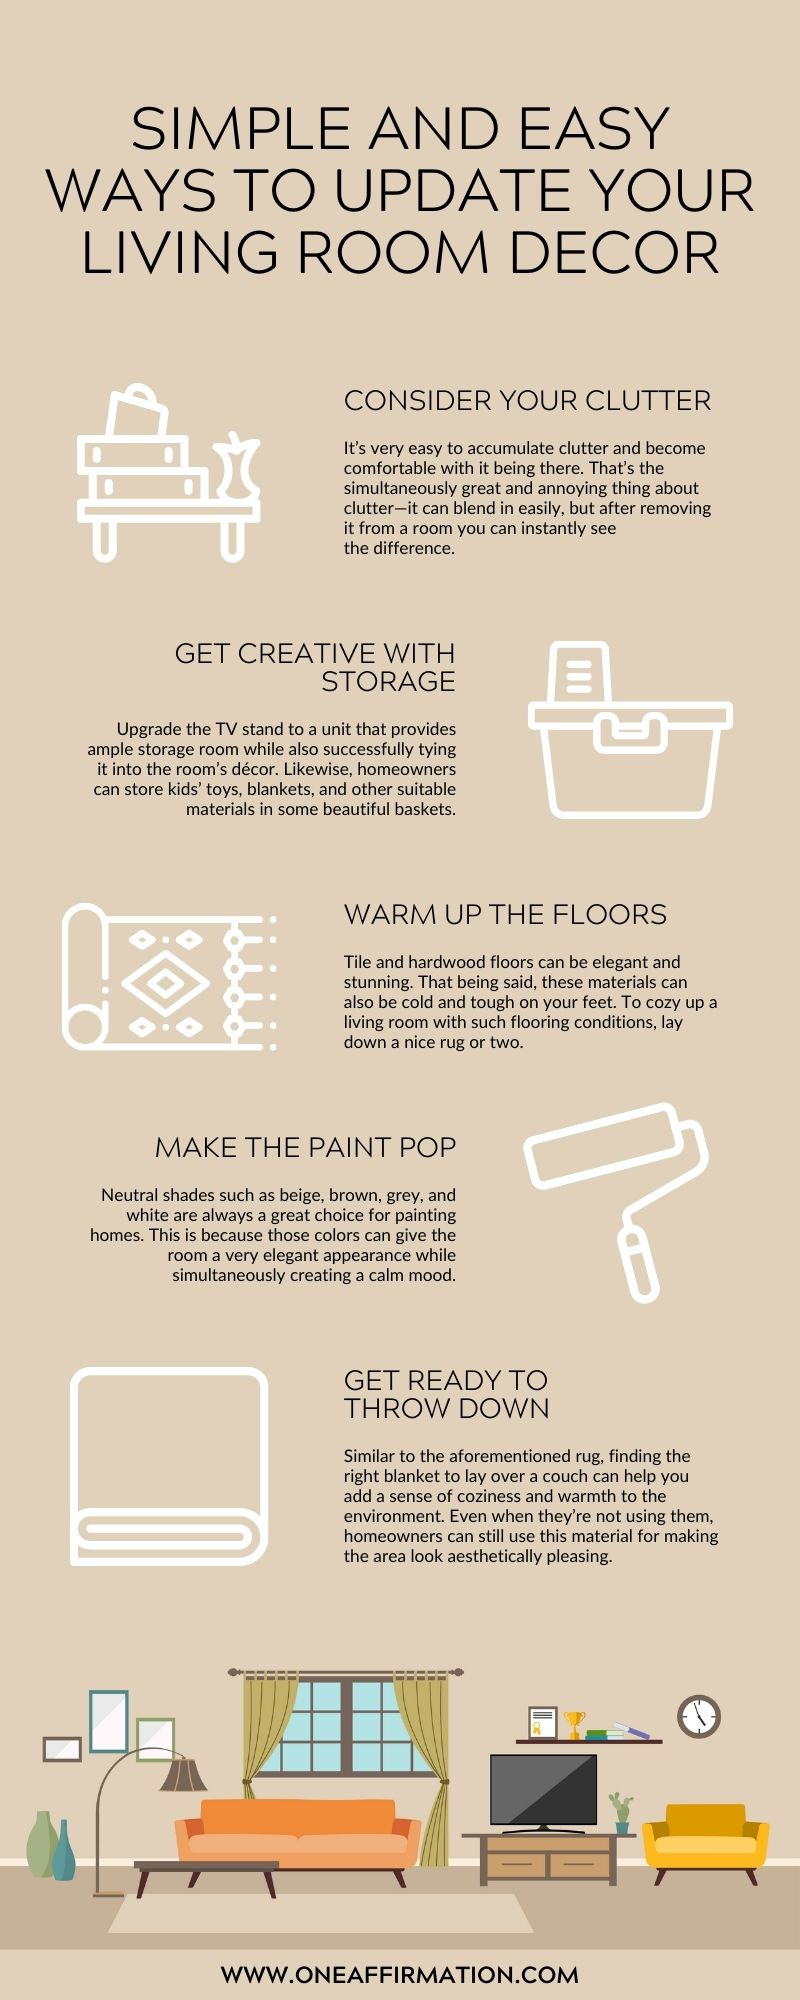 Simple and Easy Ways To Update Your Living Room Decor